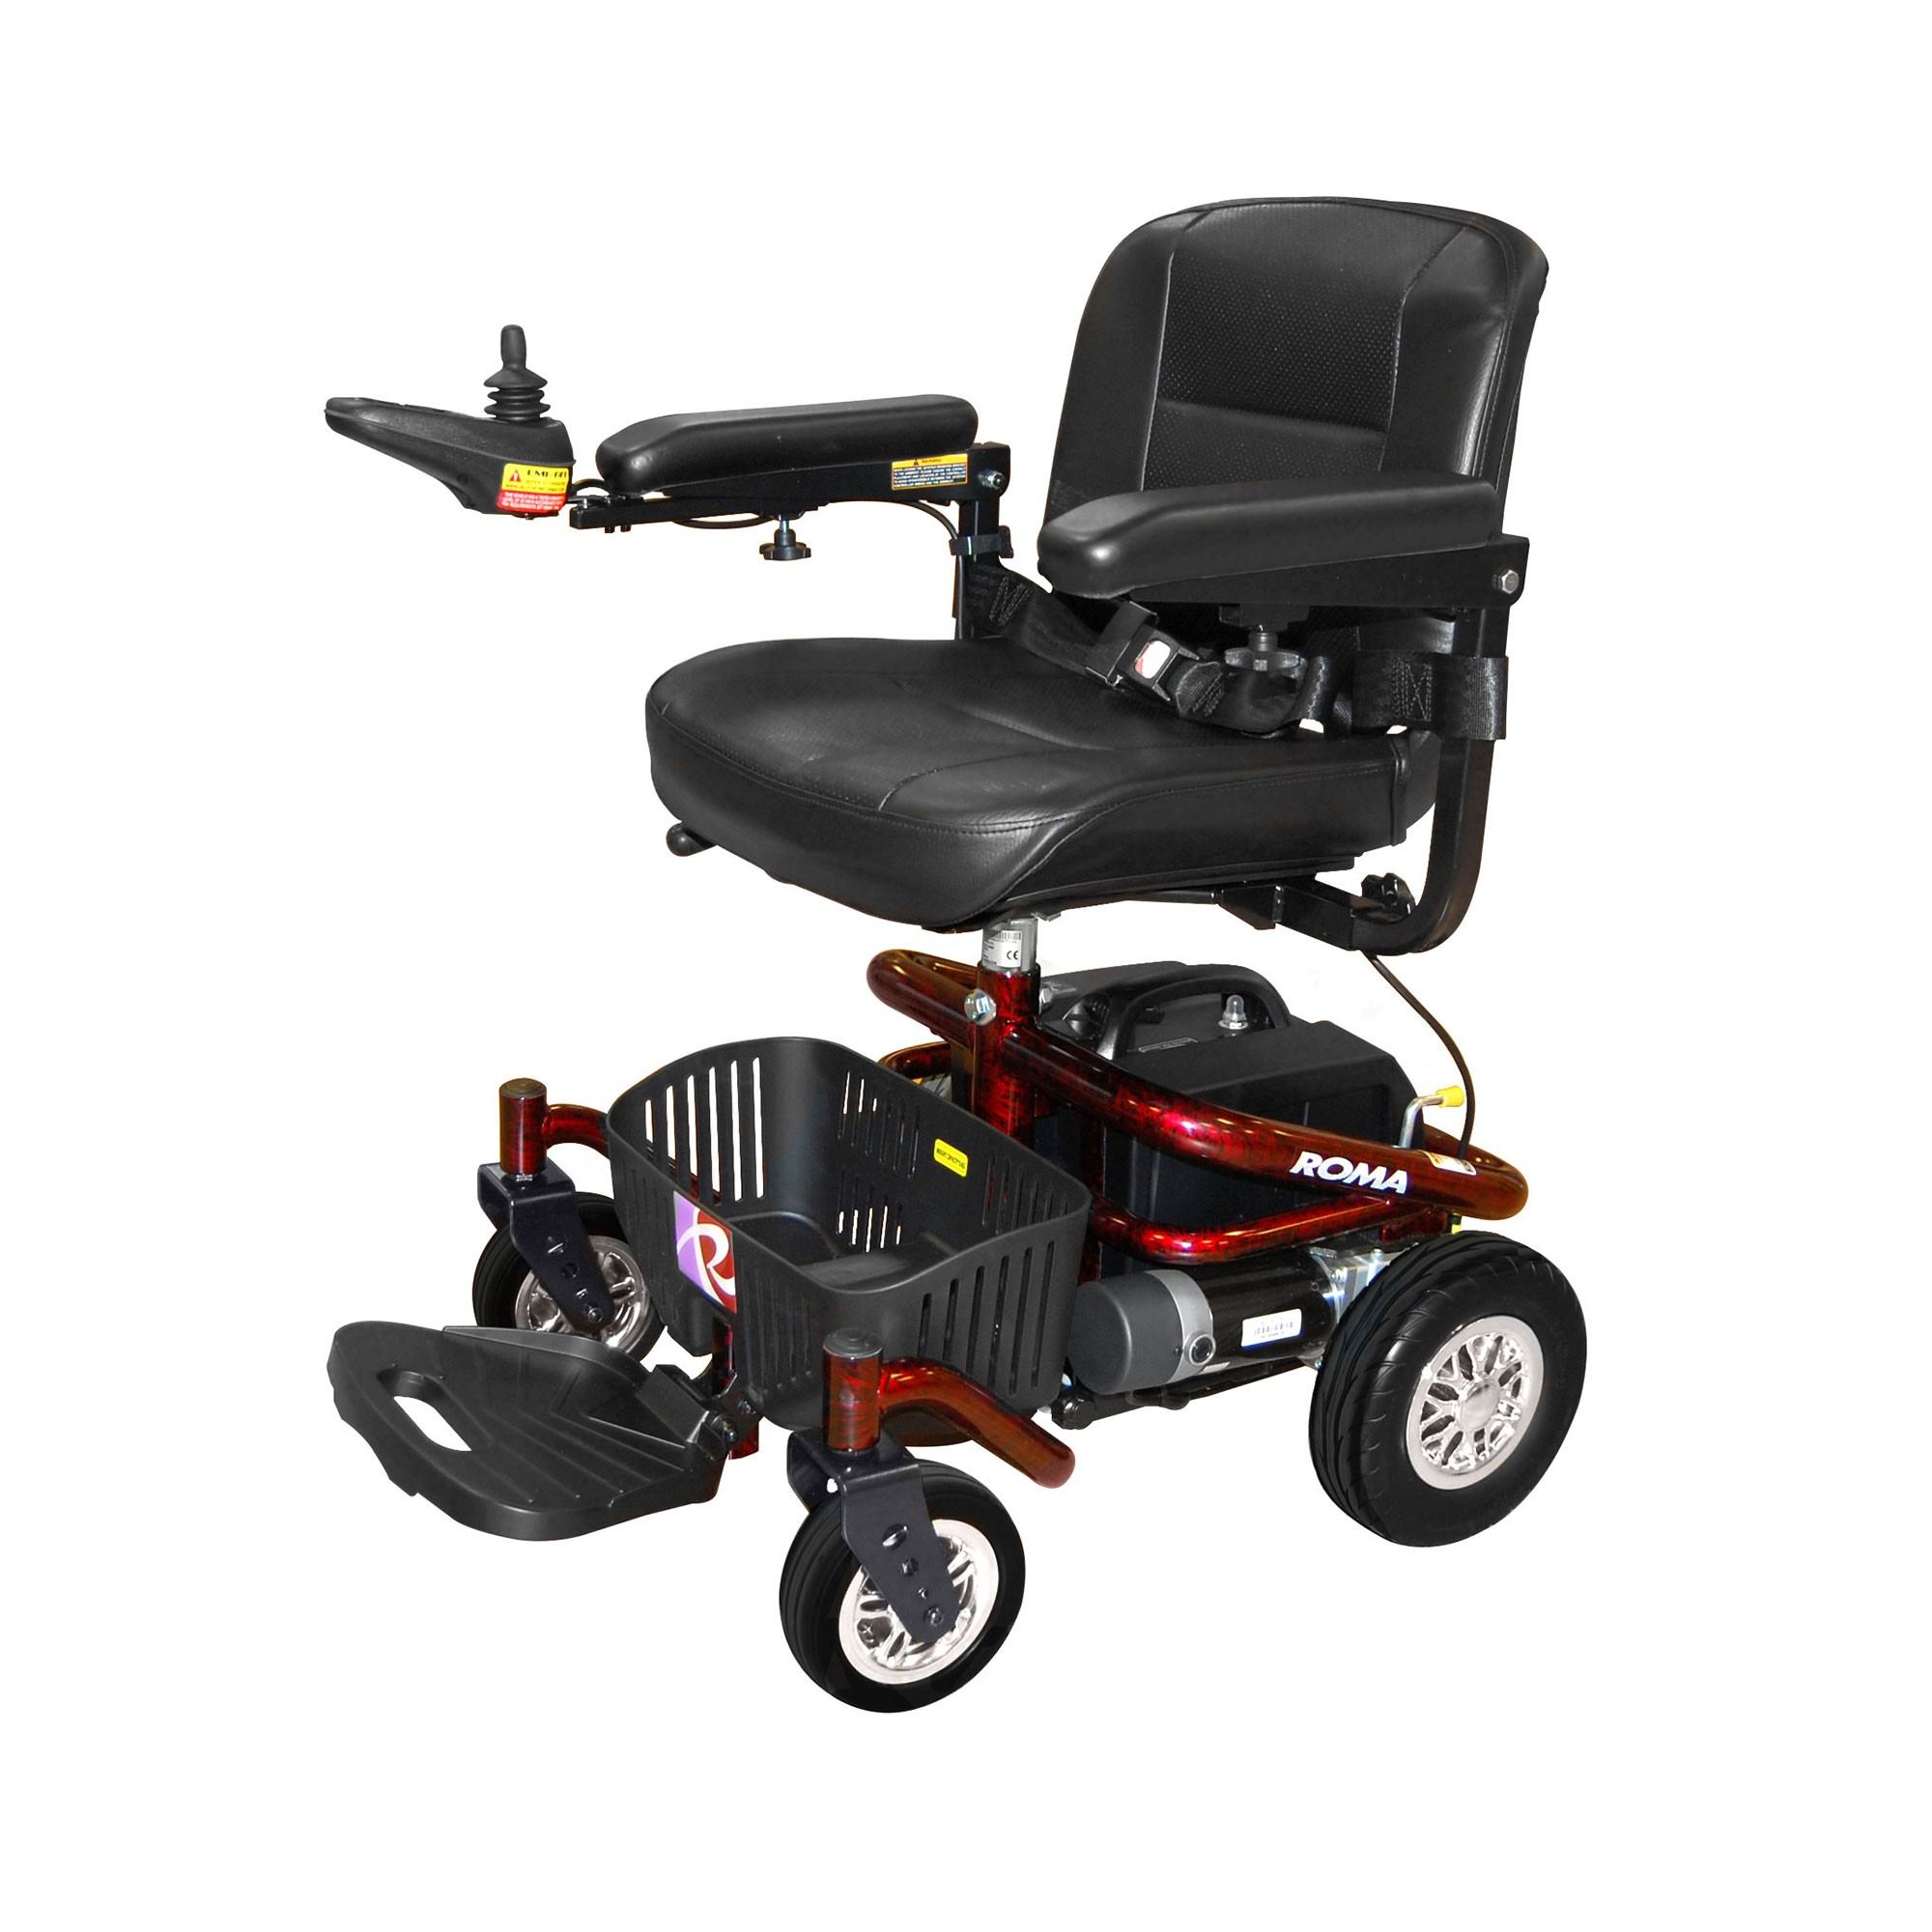 Electric Chair Mobility Roma Reno Ii Electric Wheelchair Delivered Next Day For